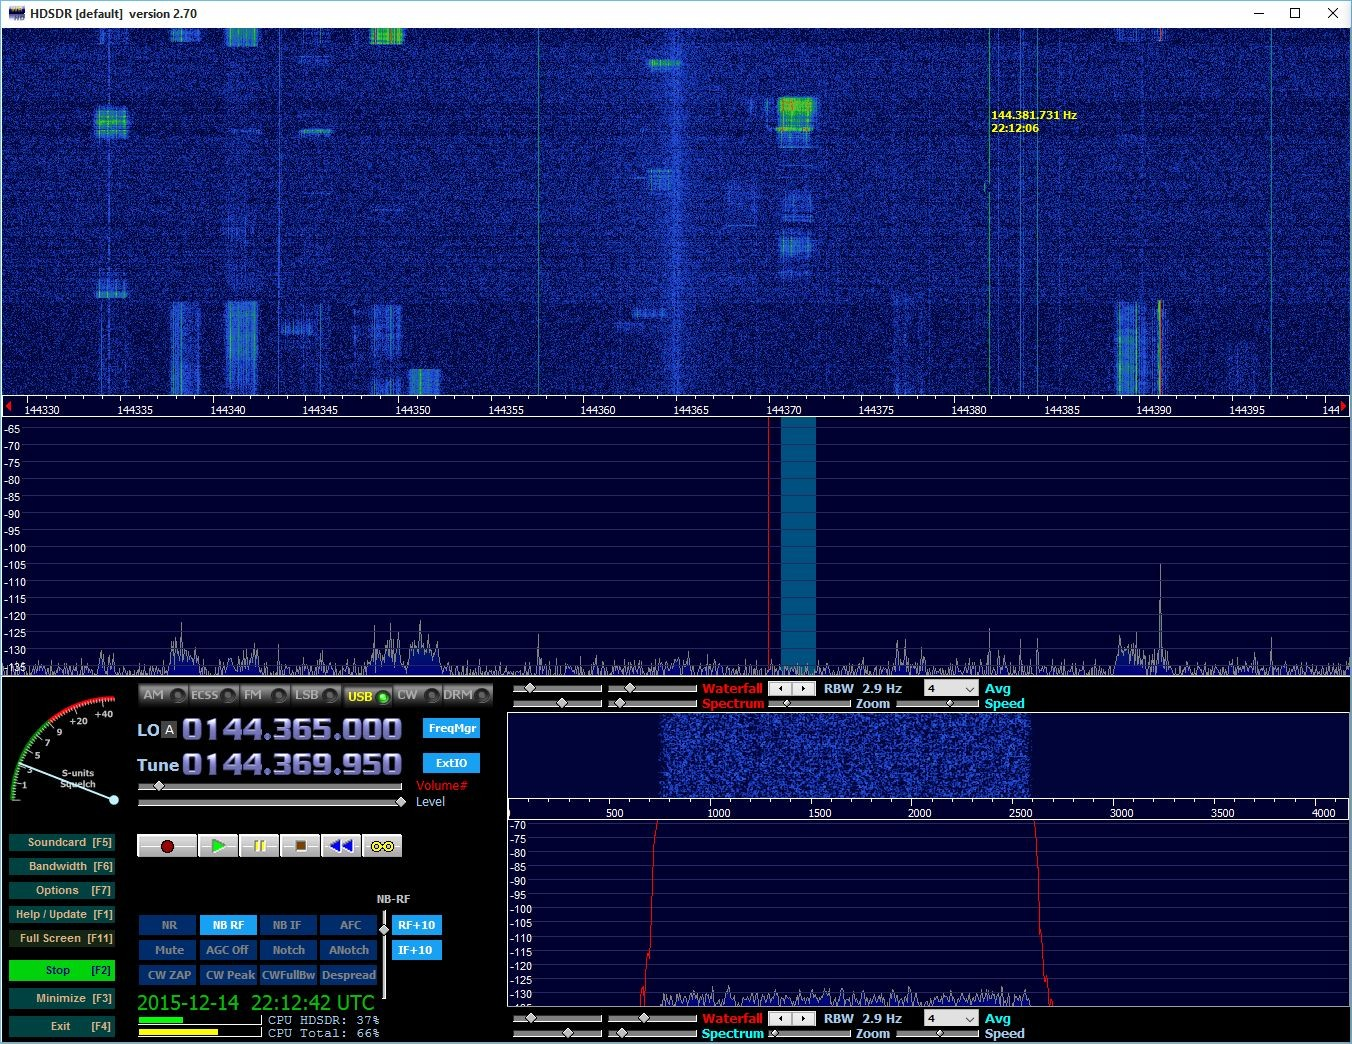 Bursts from RU3X calling CQ on 144.370